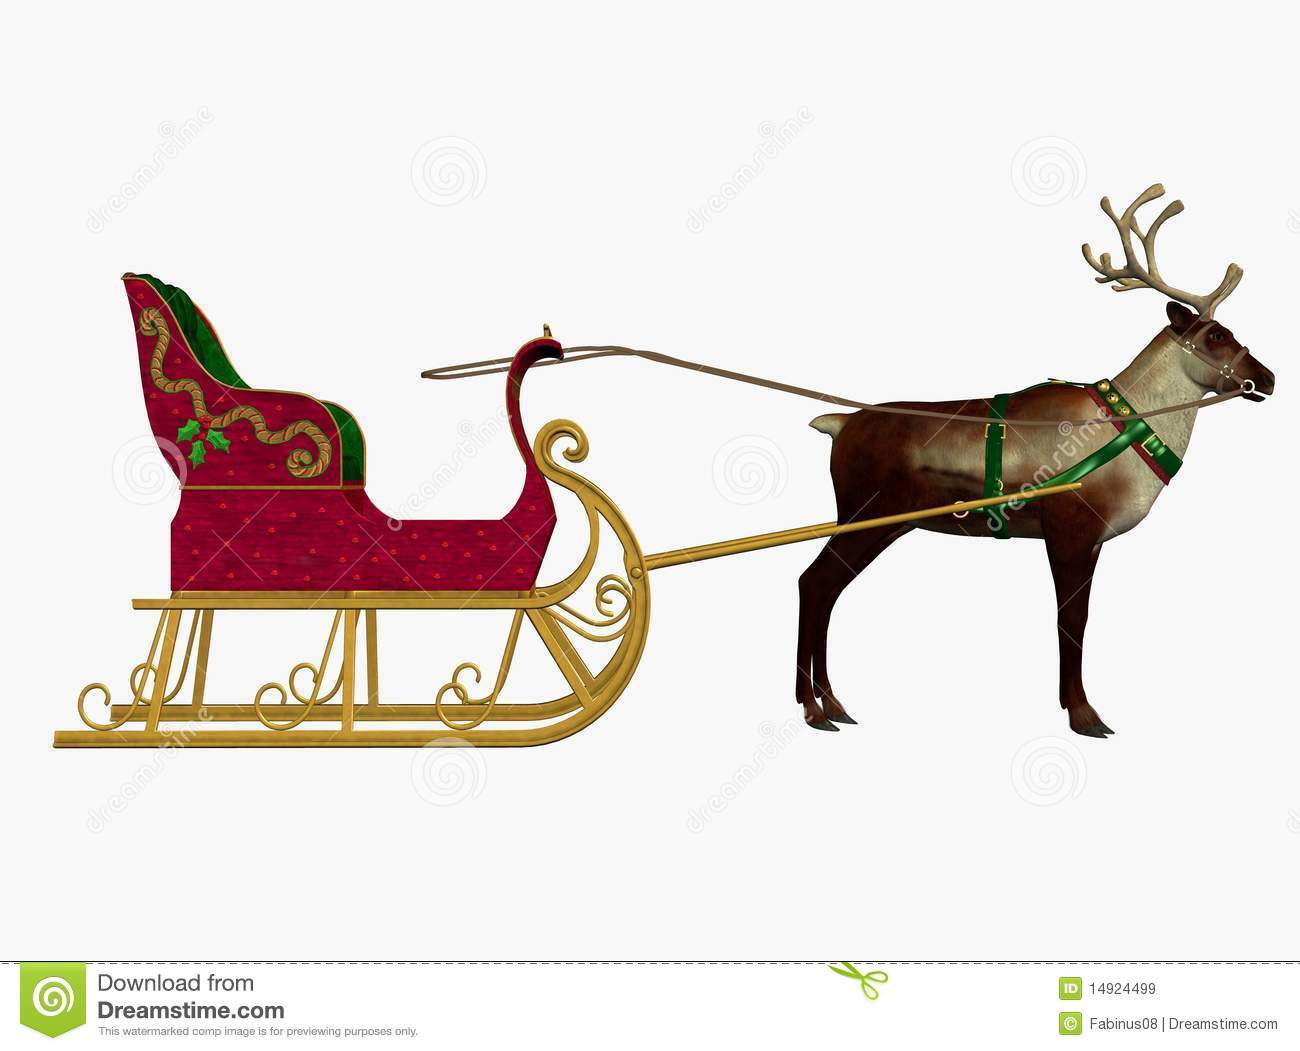 Royalty Free Stock Images: Reindeer and sleigh. Image: 14924499